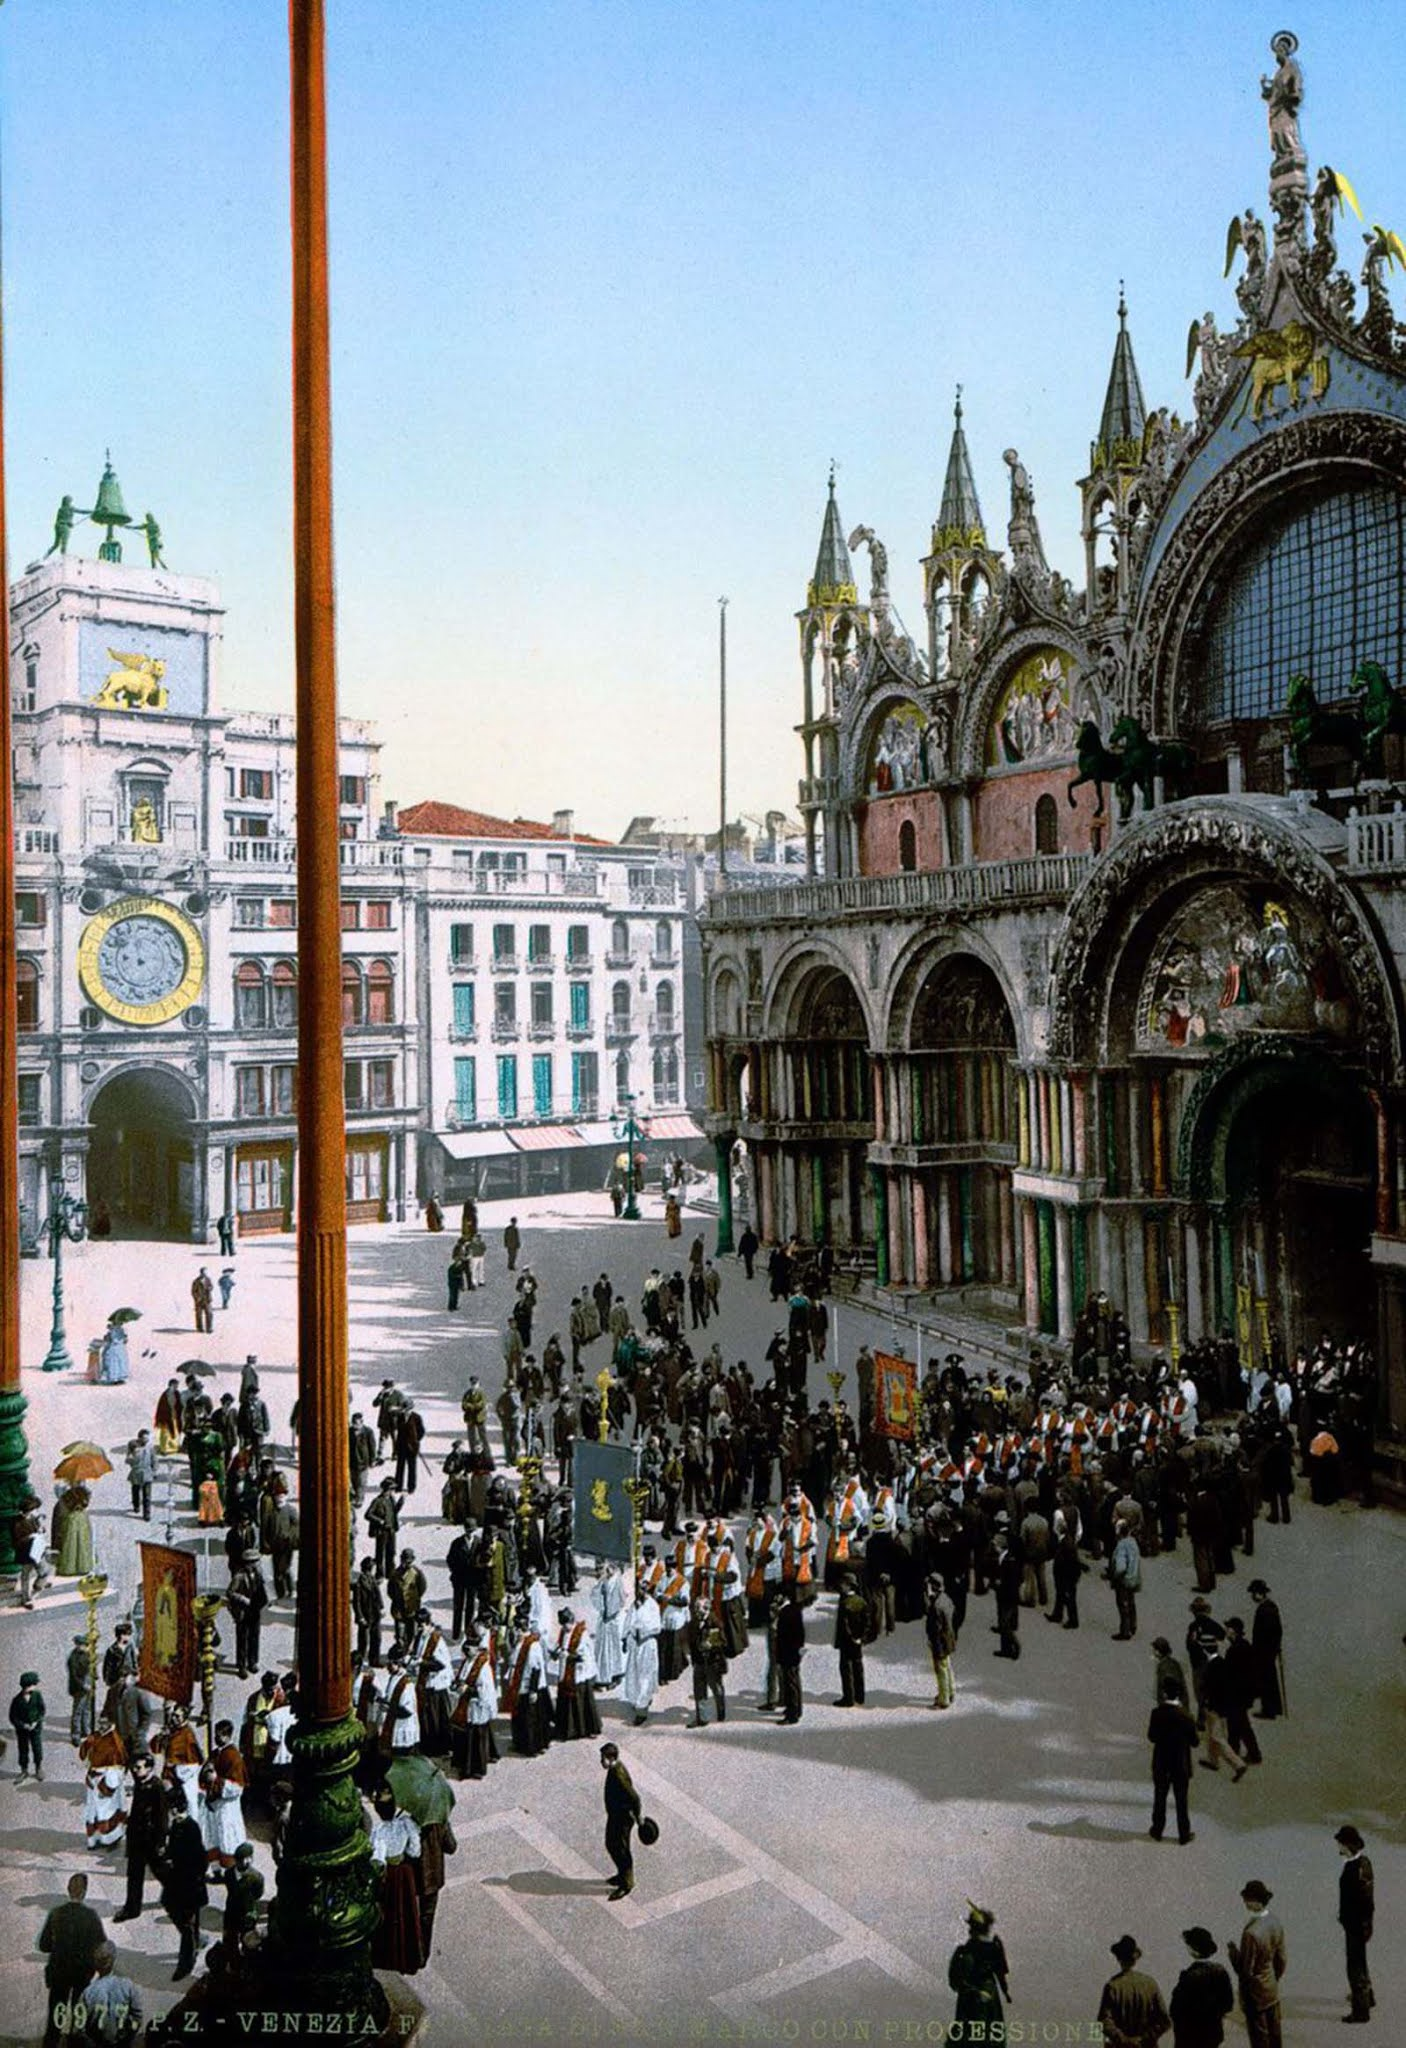 A procession in front of St. Mark's.